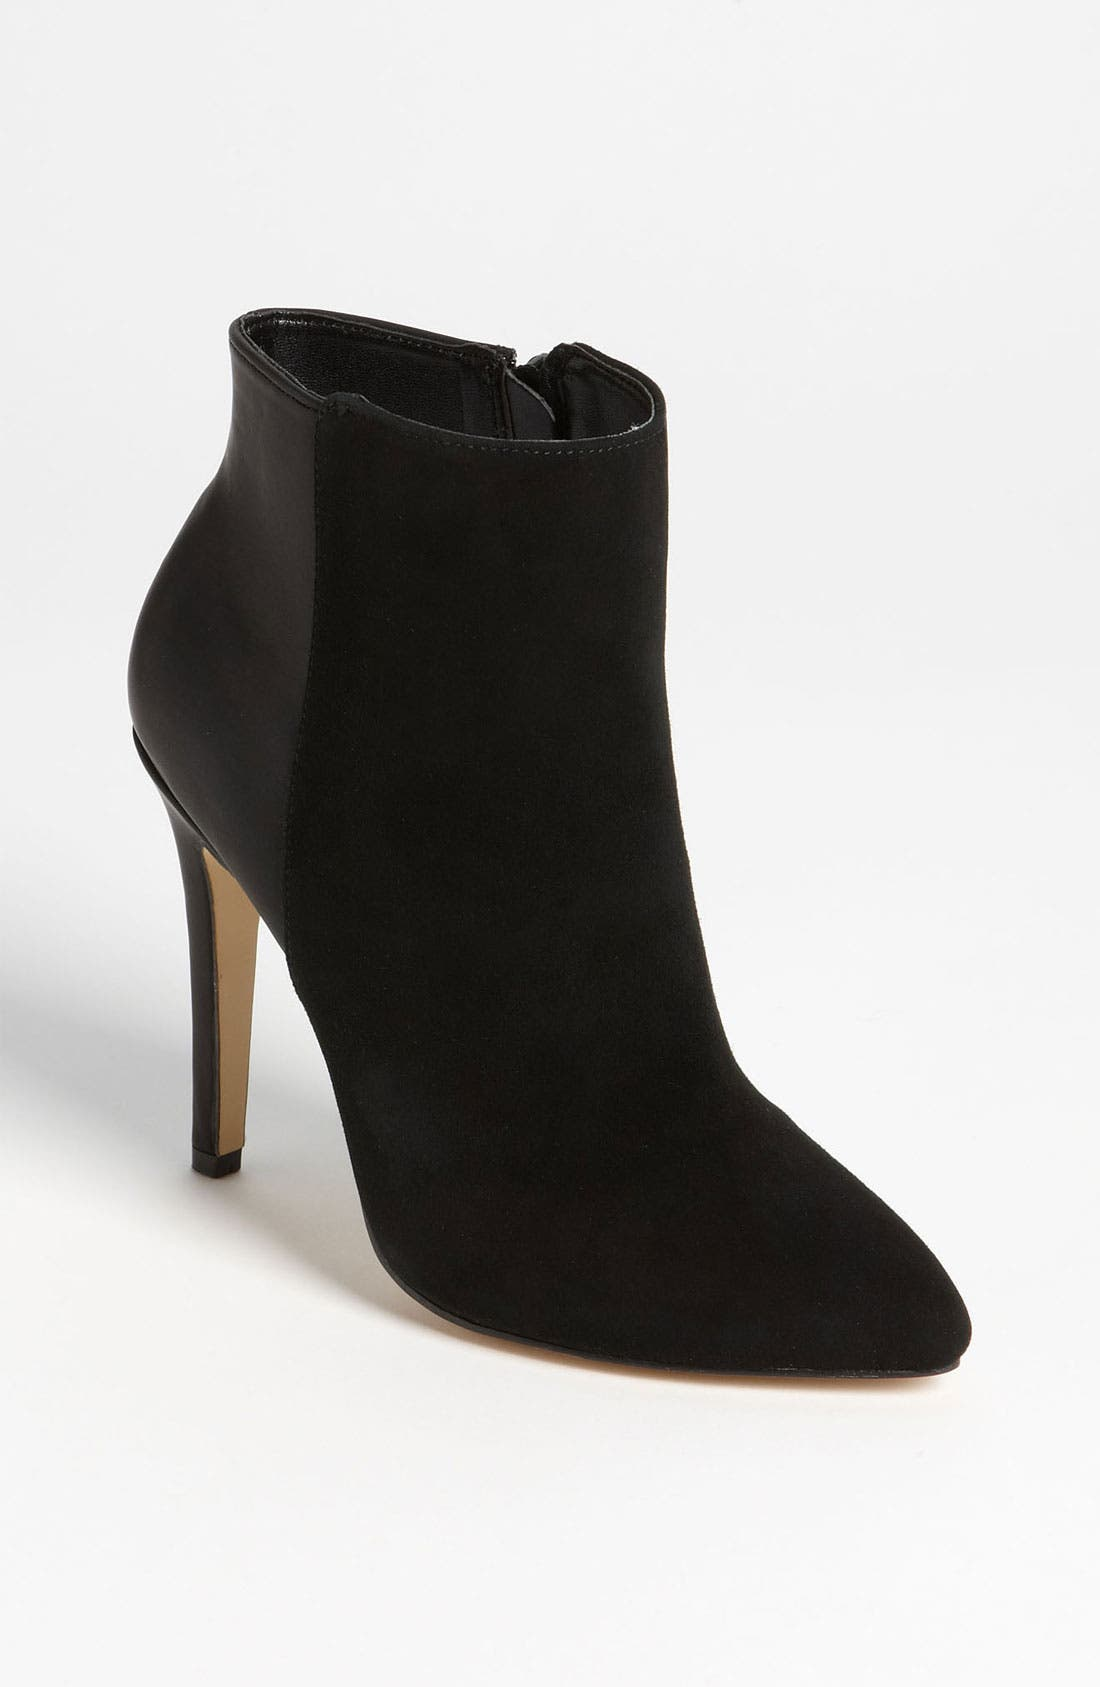 Alternate Image 1 Selected - Sole Society 'Aster' Bootie